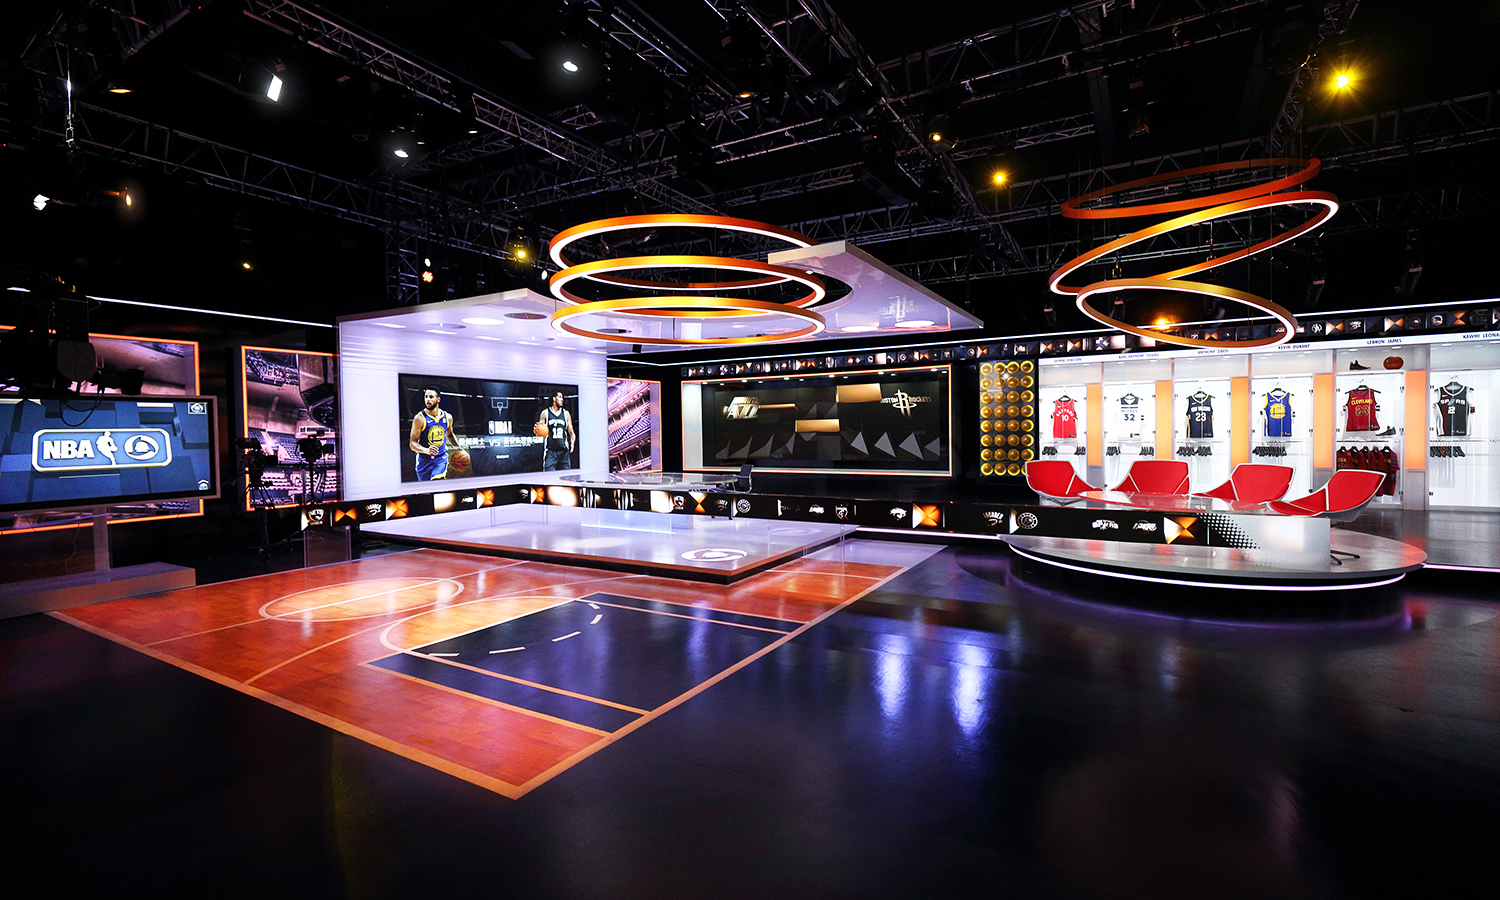 These Productions Are Designed For >> Tencent's NBA studio blends basketball references with tech - NewscastStudio